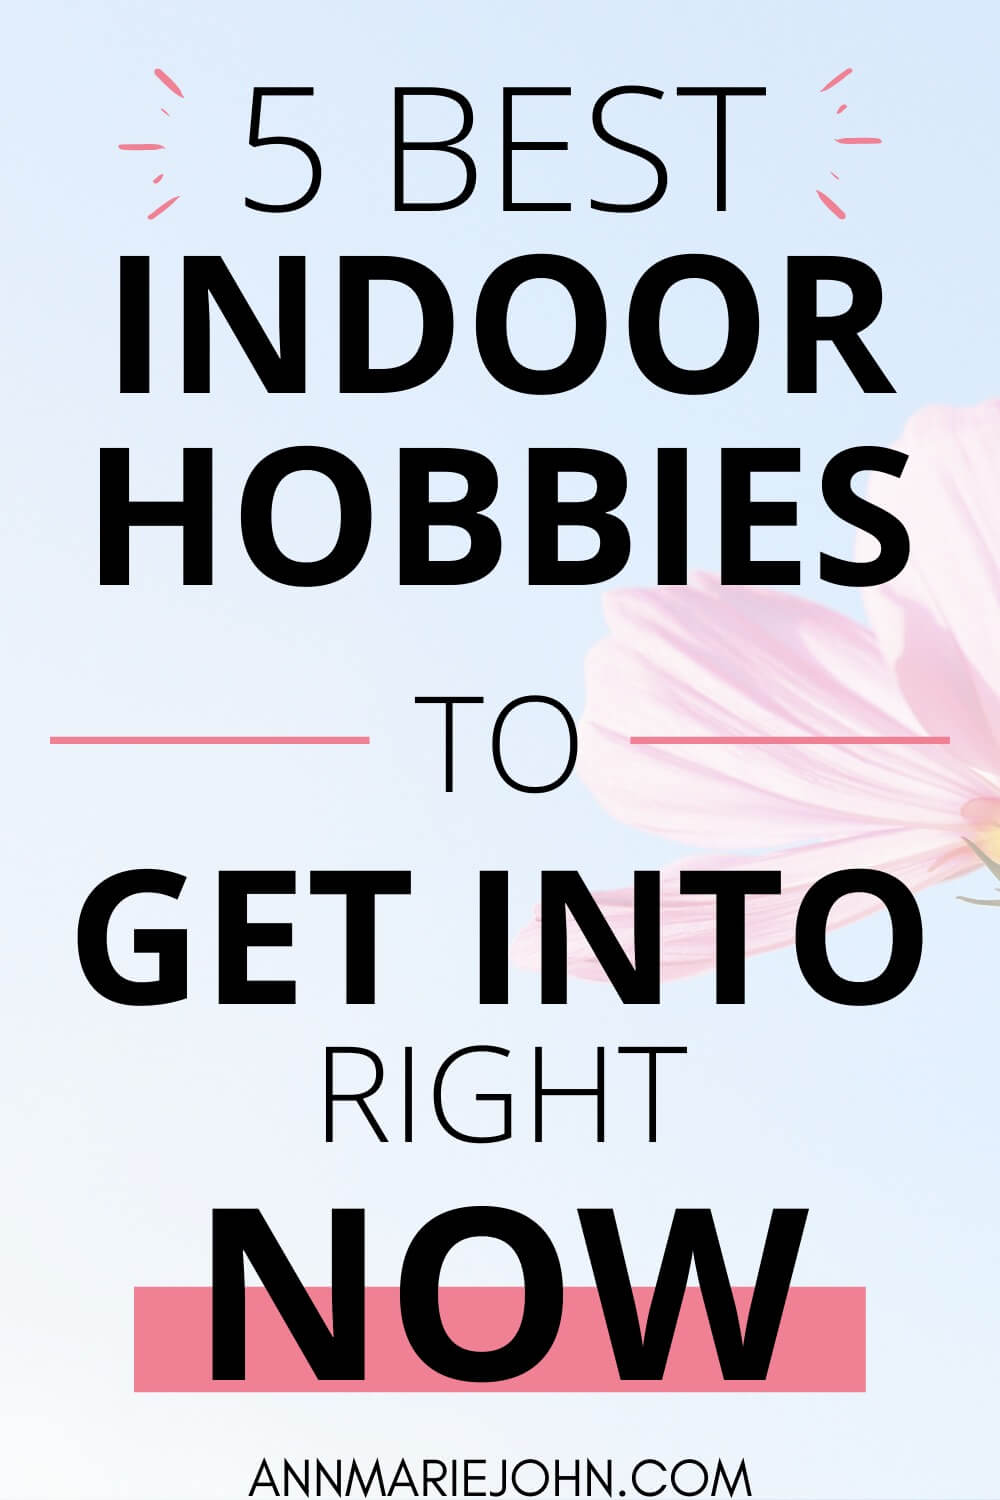 The Best Indoor Hobbies to Get Into Right Now